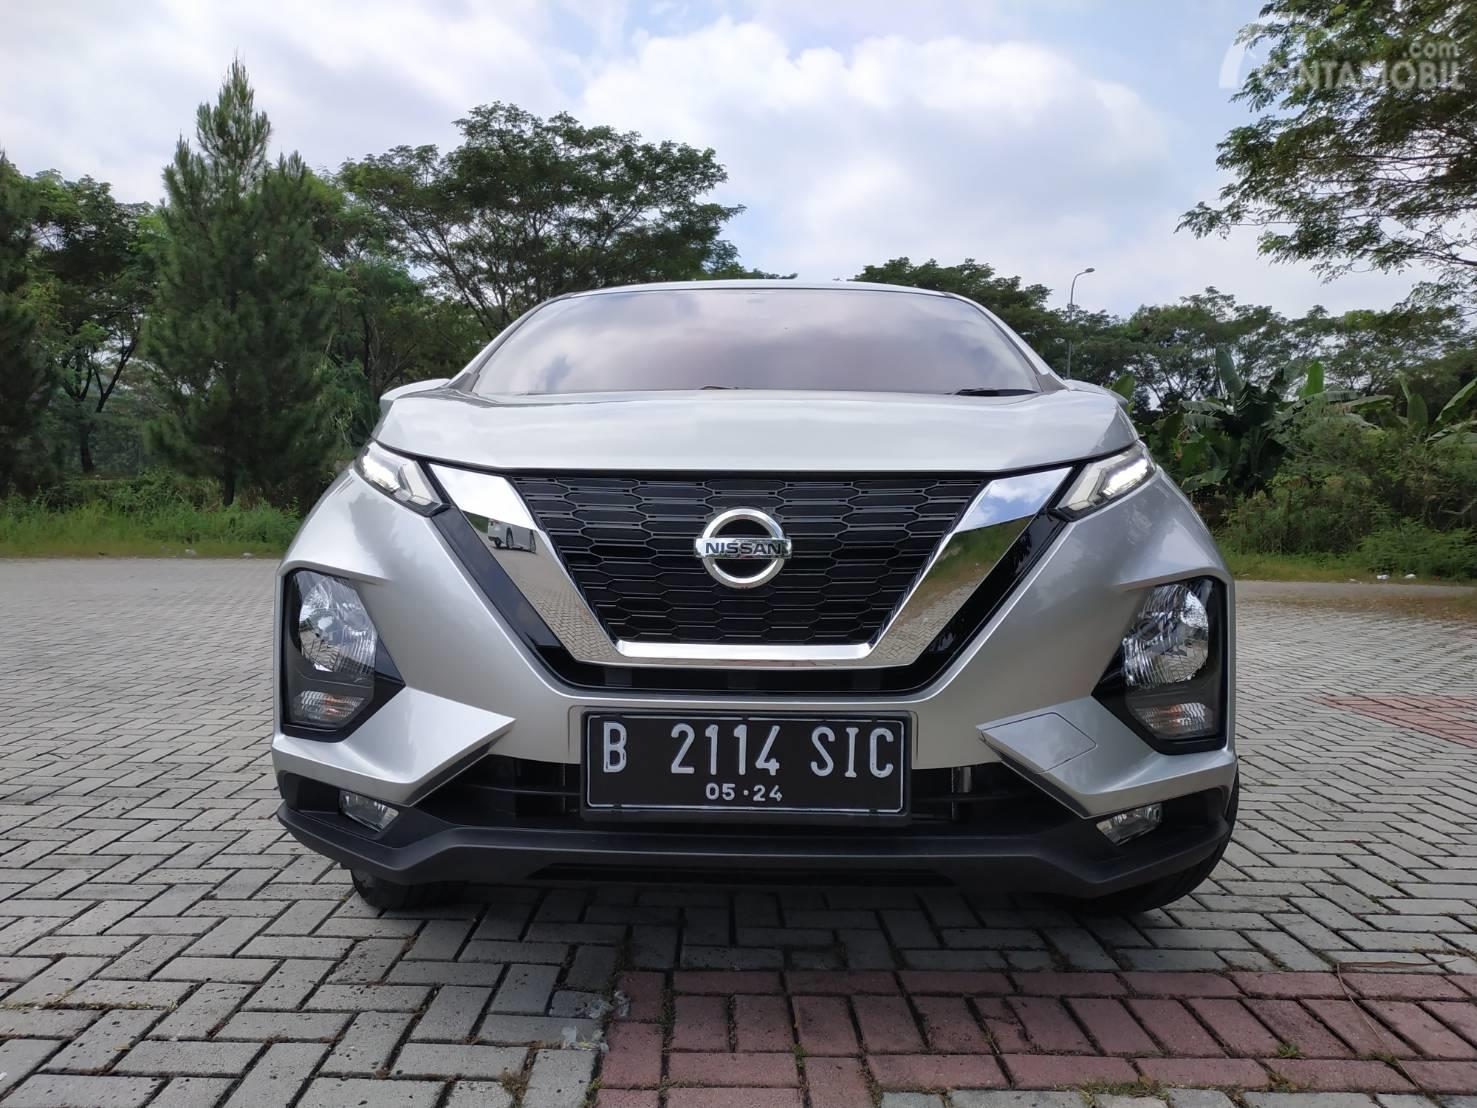 Tampak Grill All New Nissan Livina VE 2019